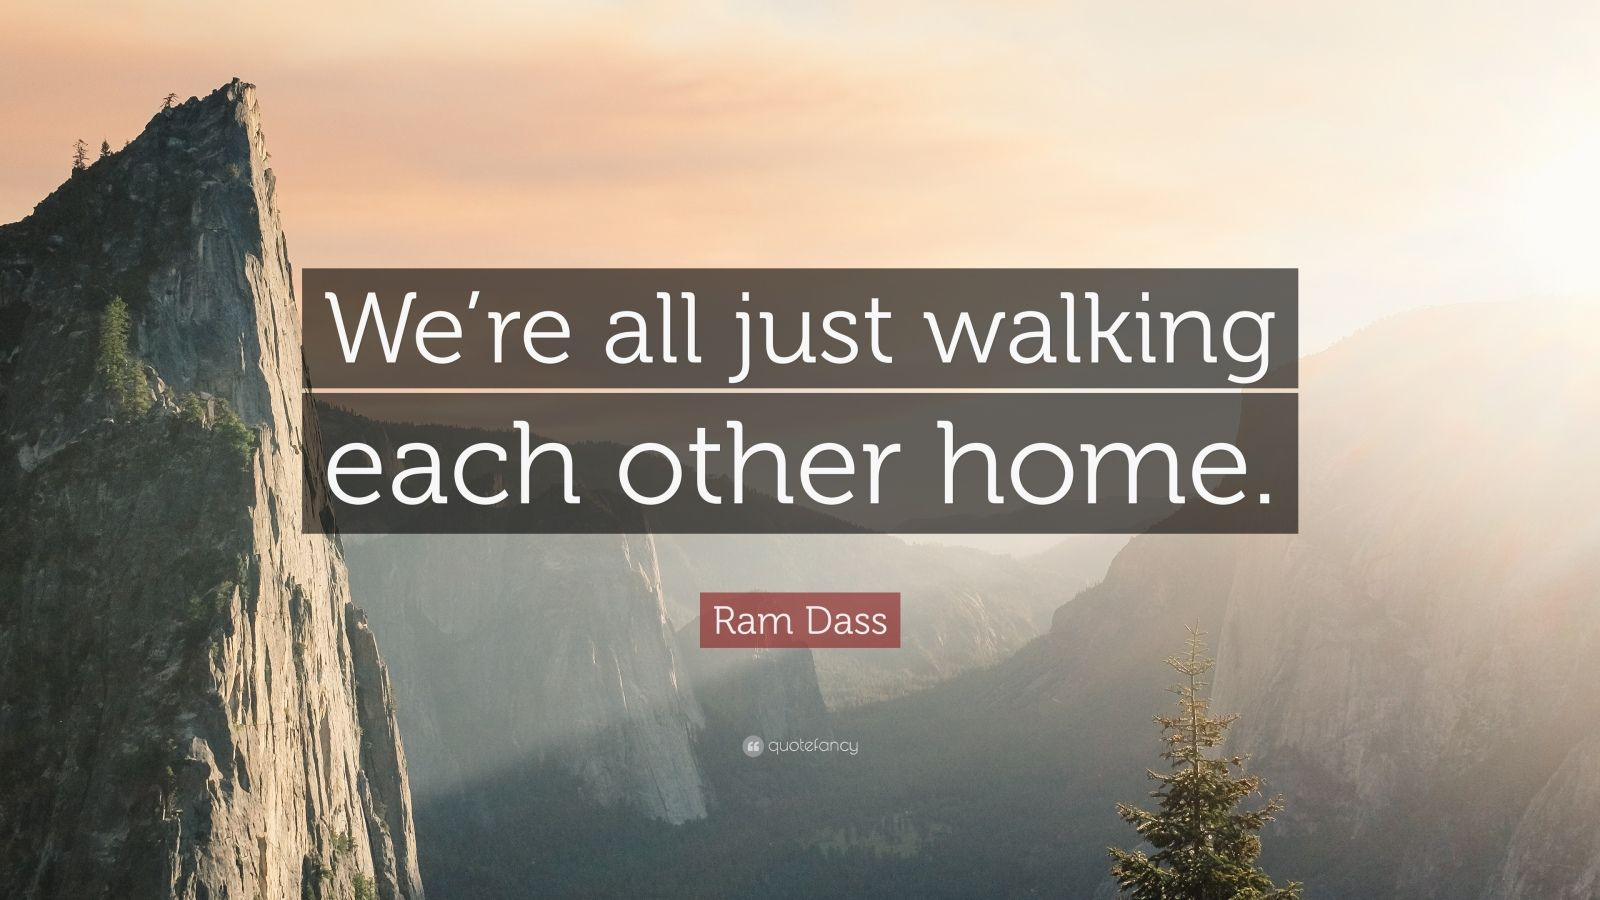 Zen Quote Wallpaper Ram Dass Quote We Re All Just Walking Each Other Home